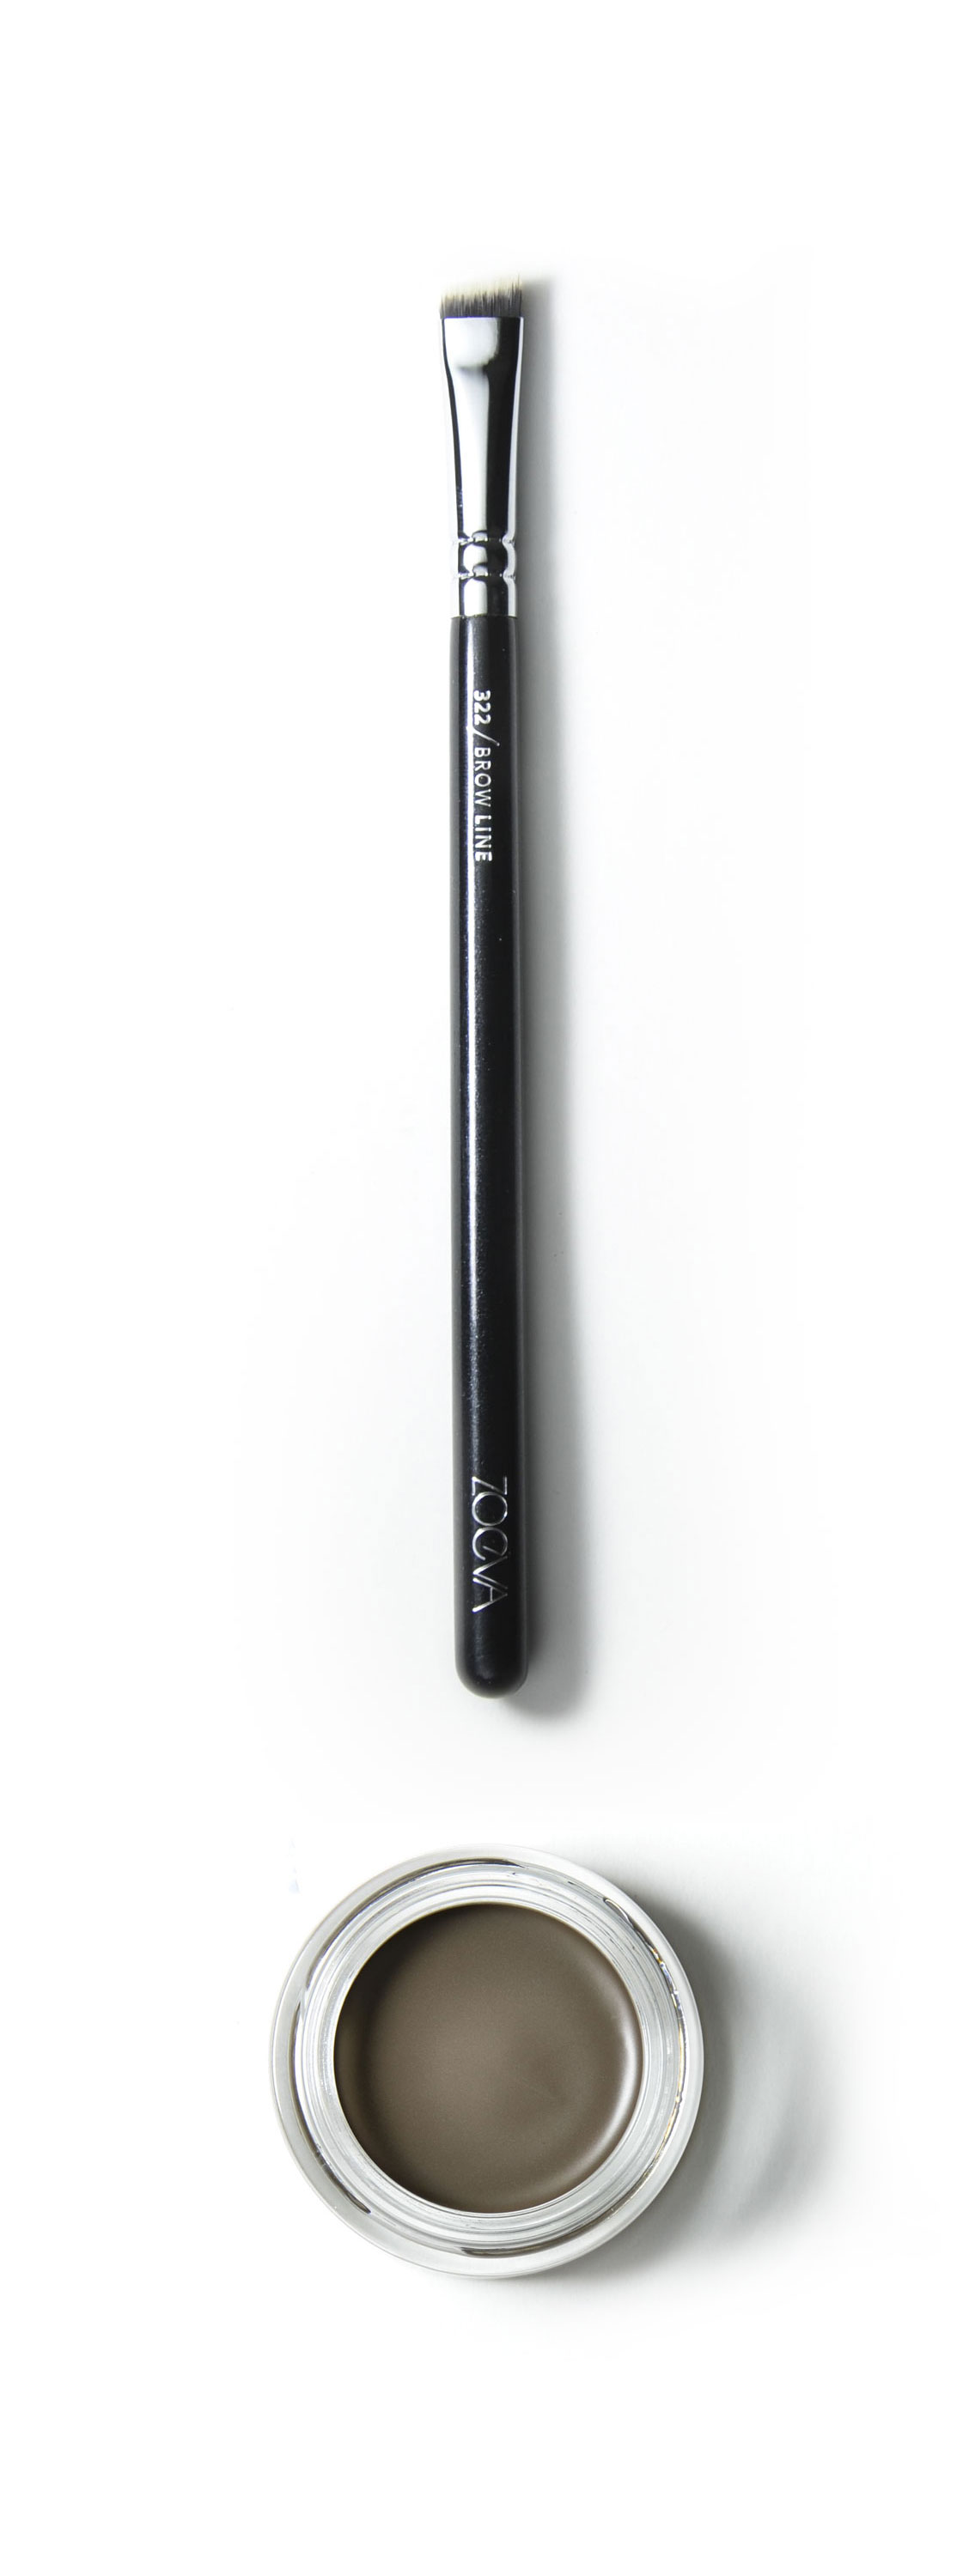 Dip Brow Pomade and 322 Brow Line Brush